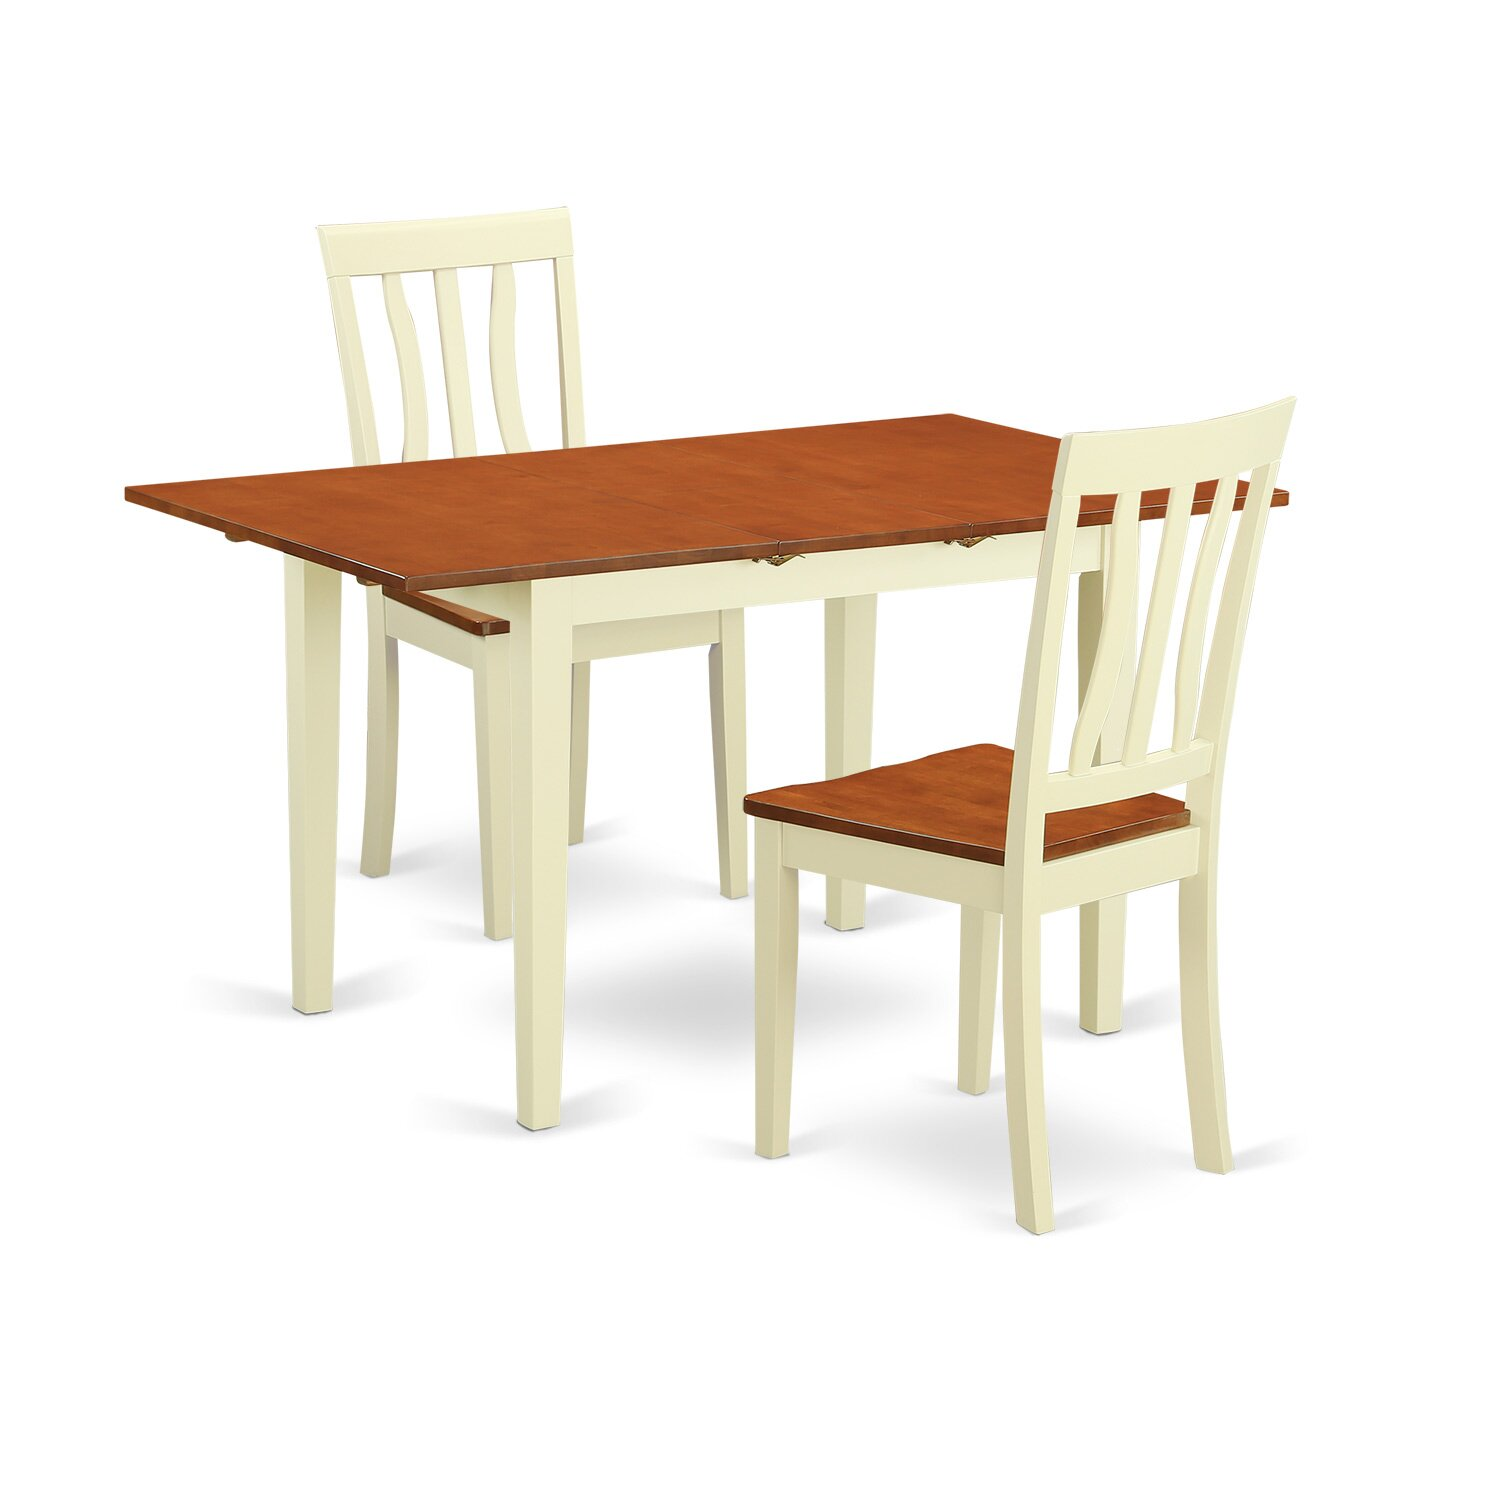 Wooden Importers 3 Piece Dining Set Reviews Wayfair